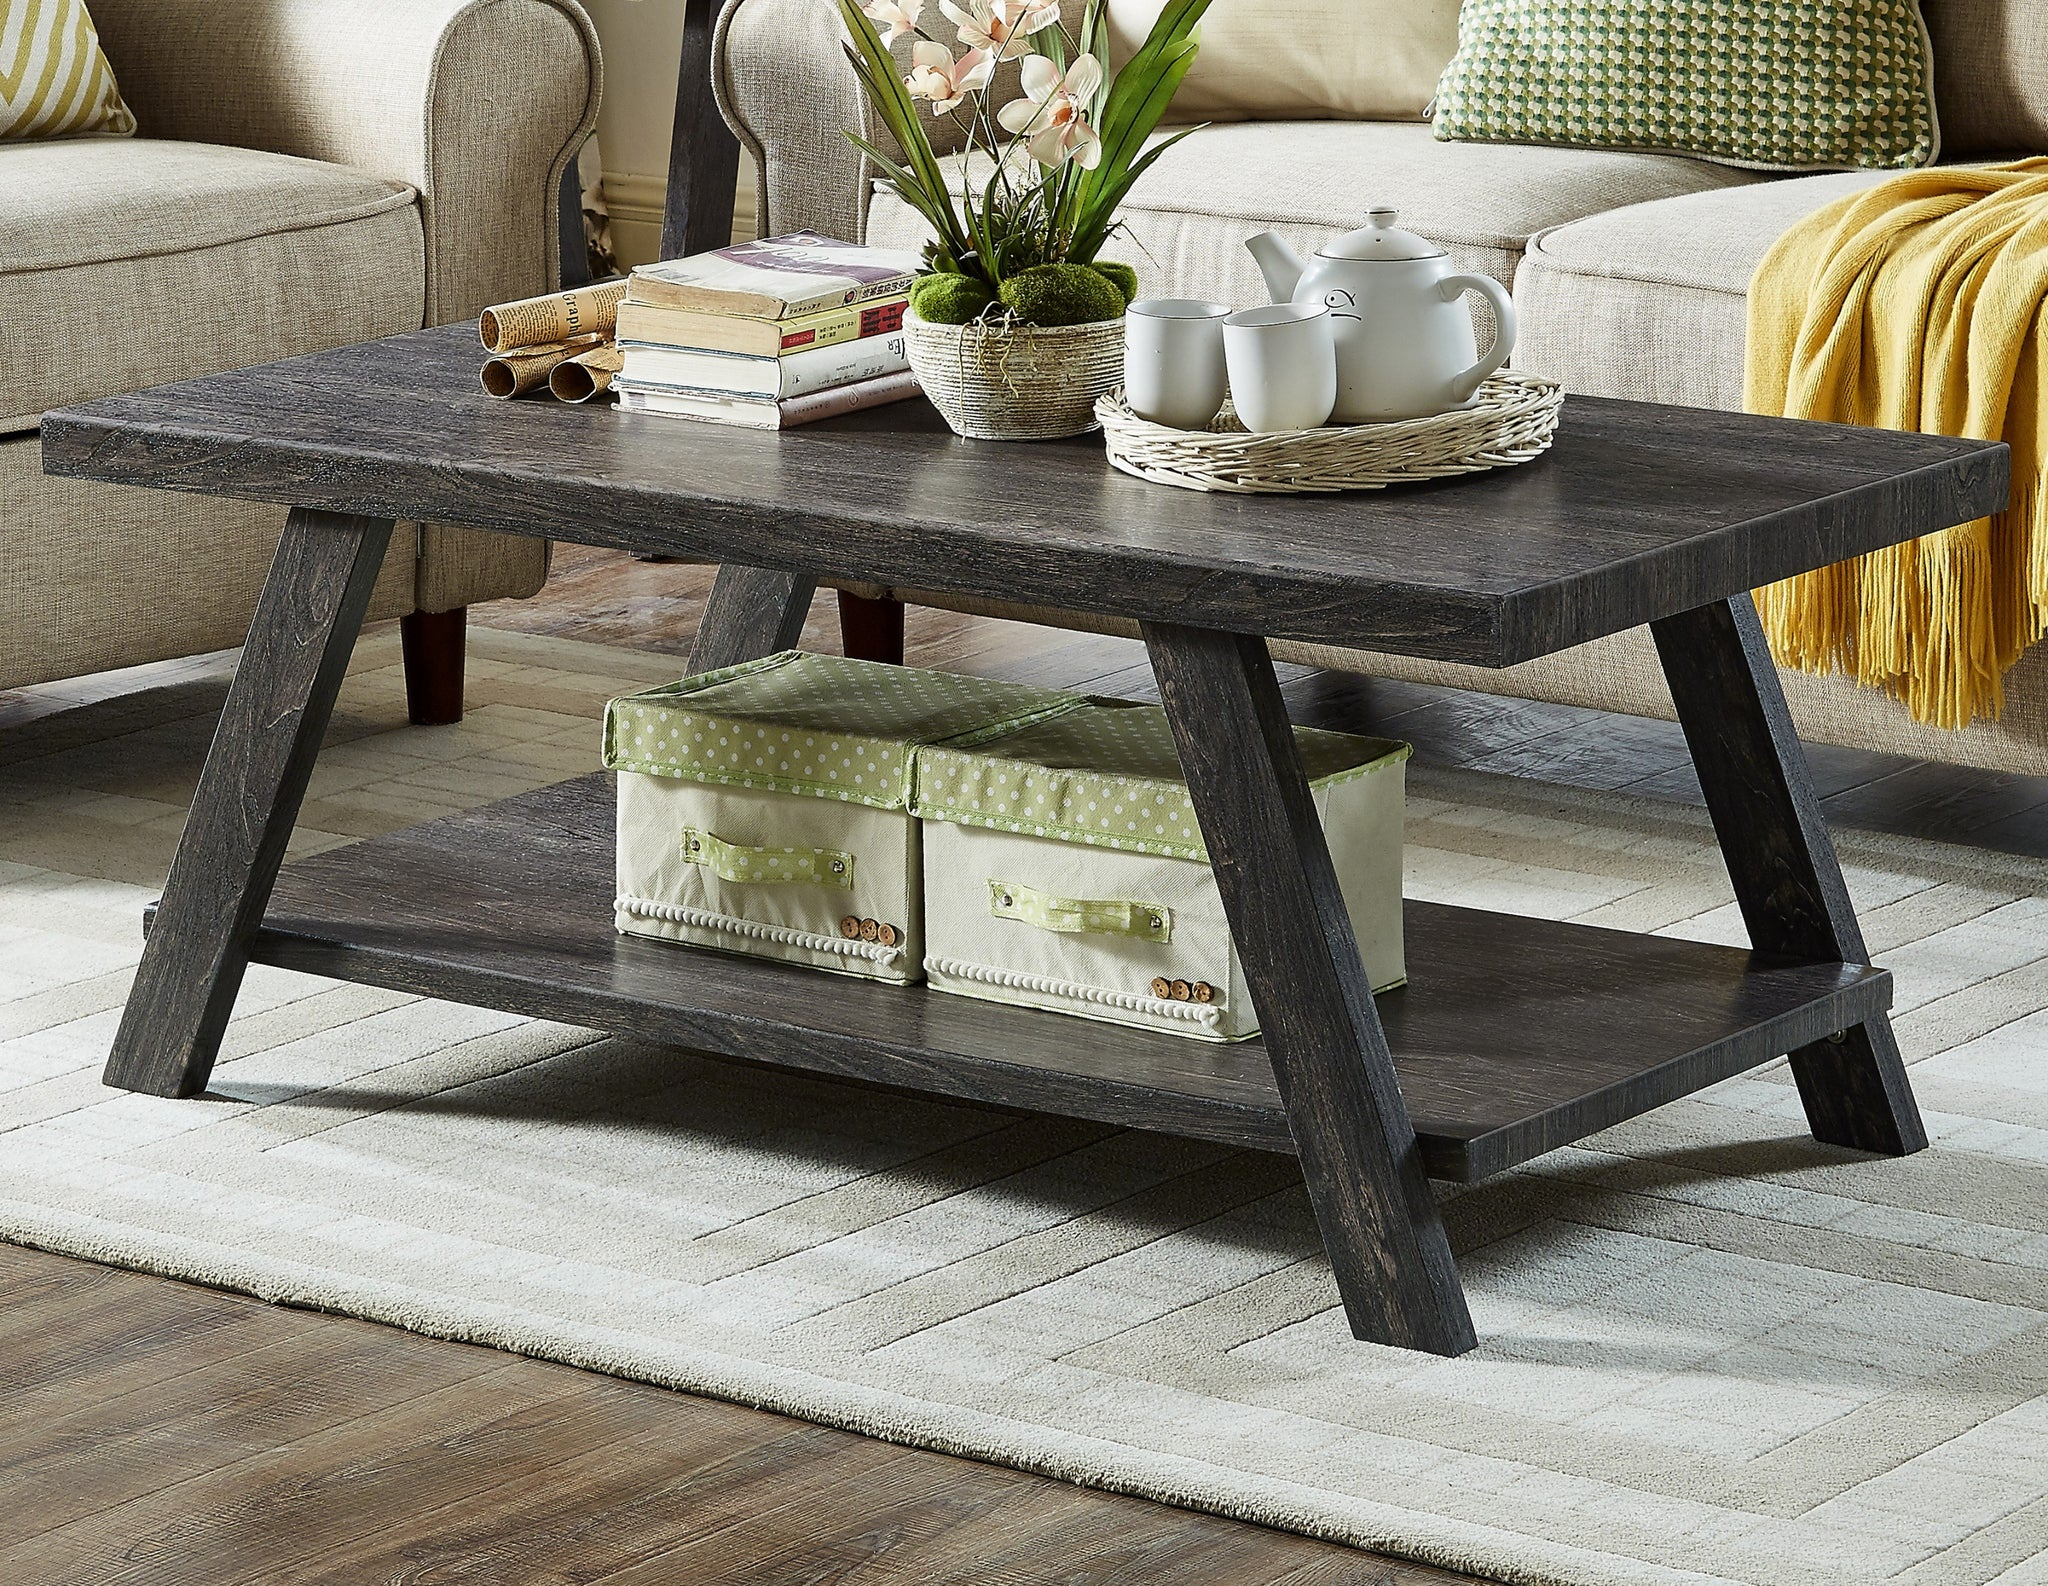 Athens Contemporary Replicated Wood Shelf Coffee Table in Charcoal Finish